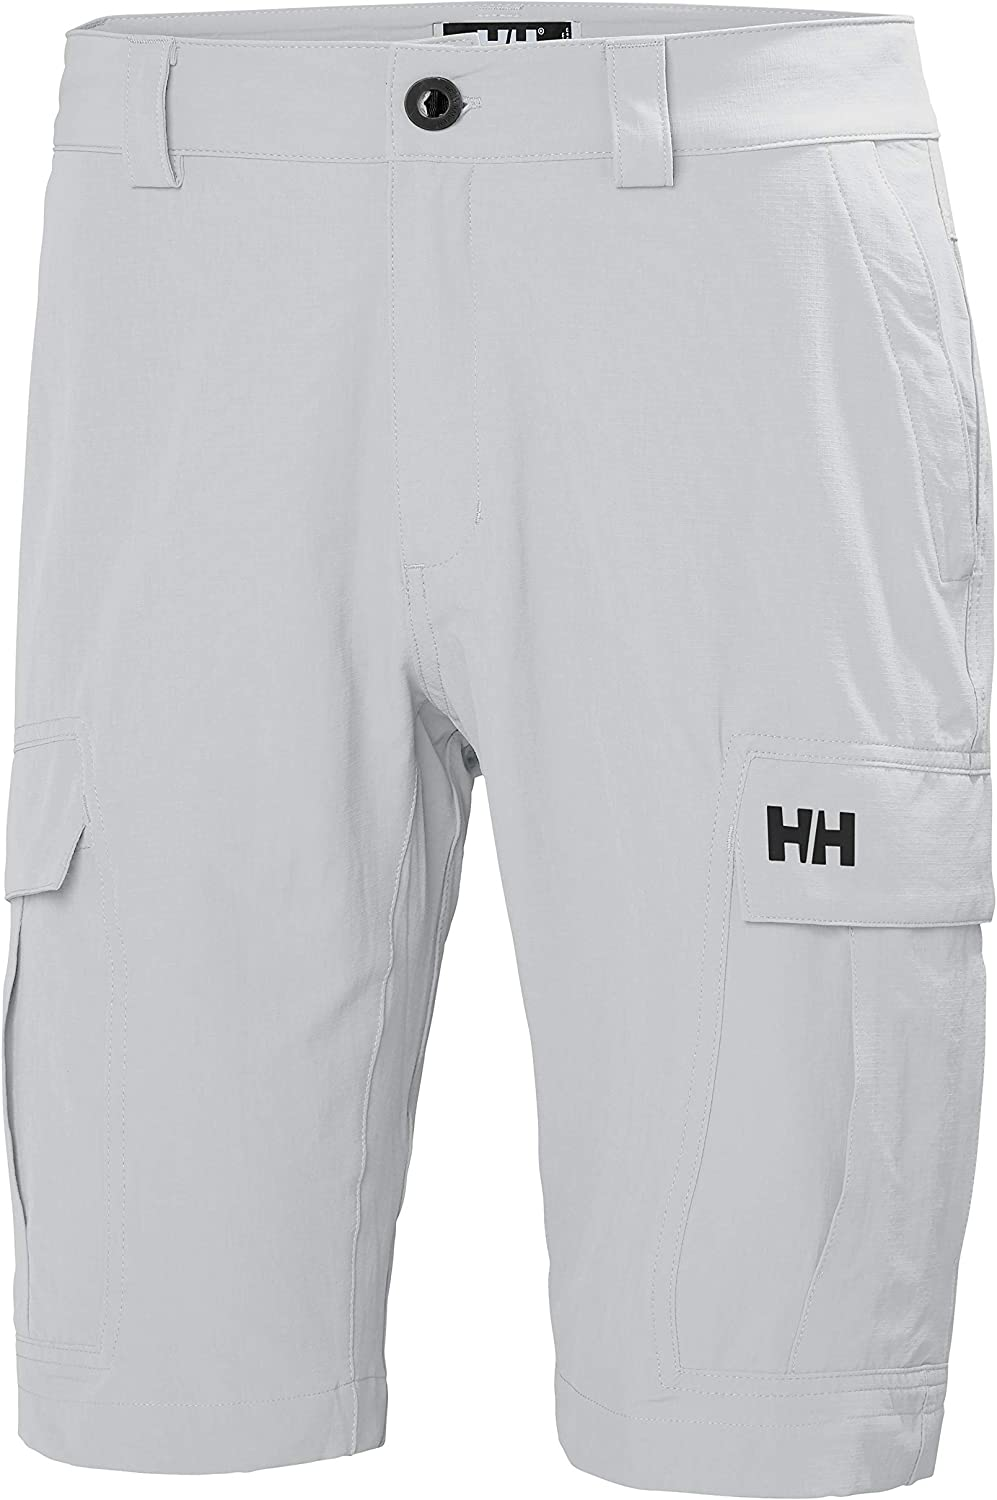 Helly-Hansen Mens Hh Cargo Ii Quick Dry Stretch Outdoor Shorts